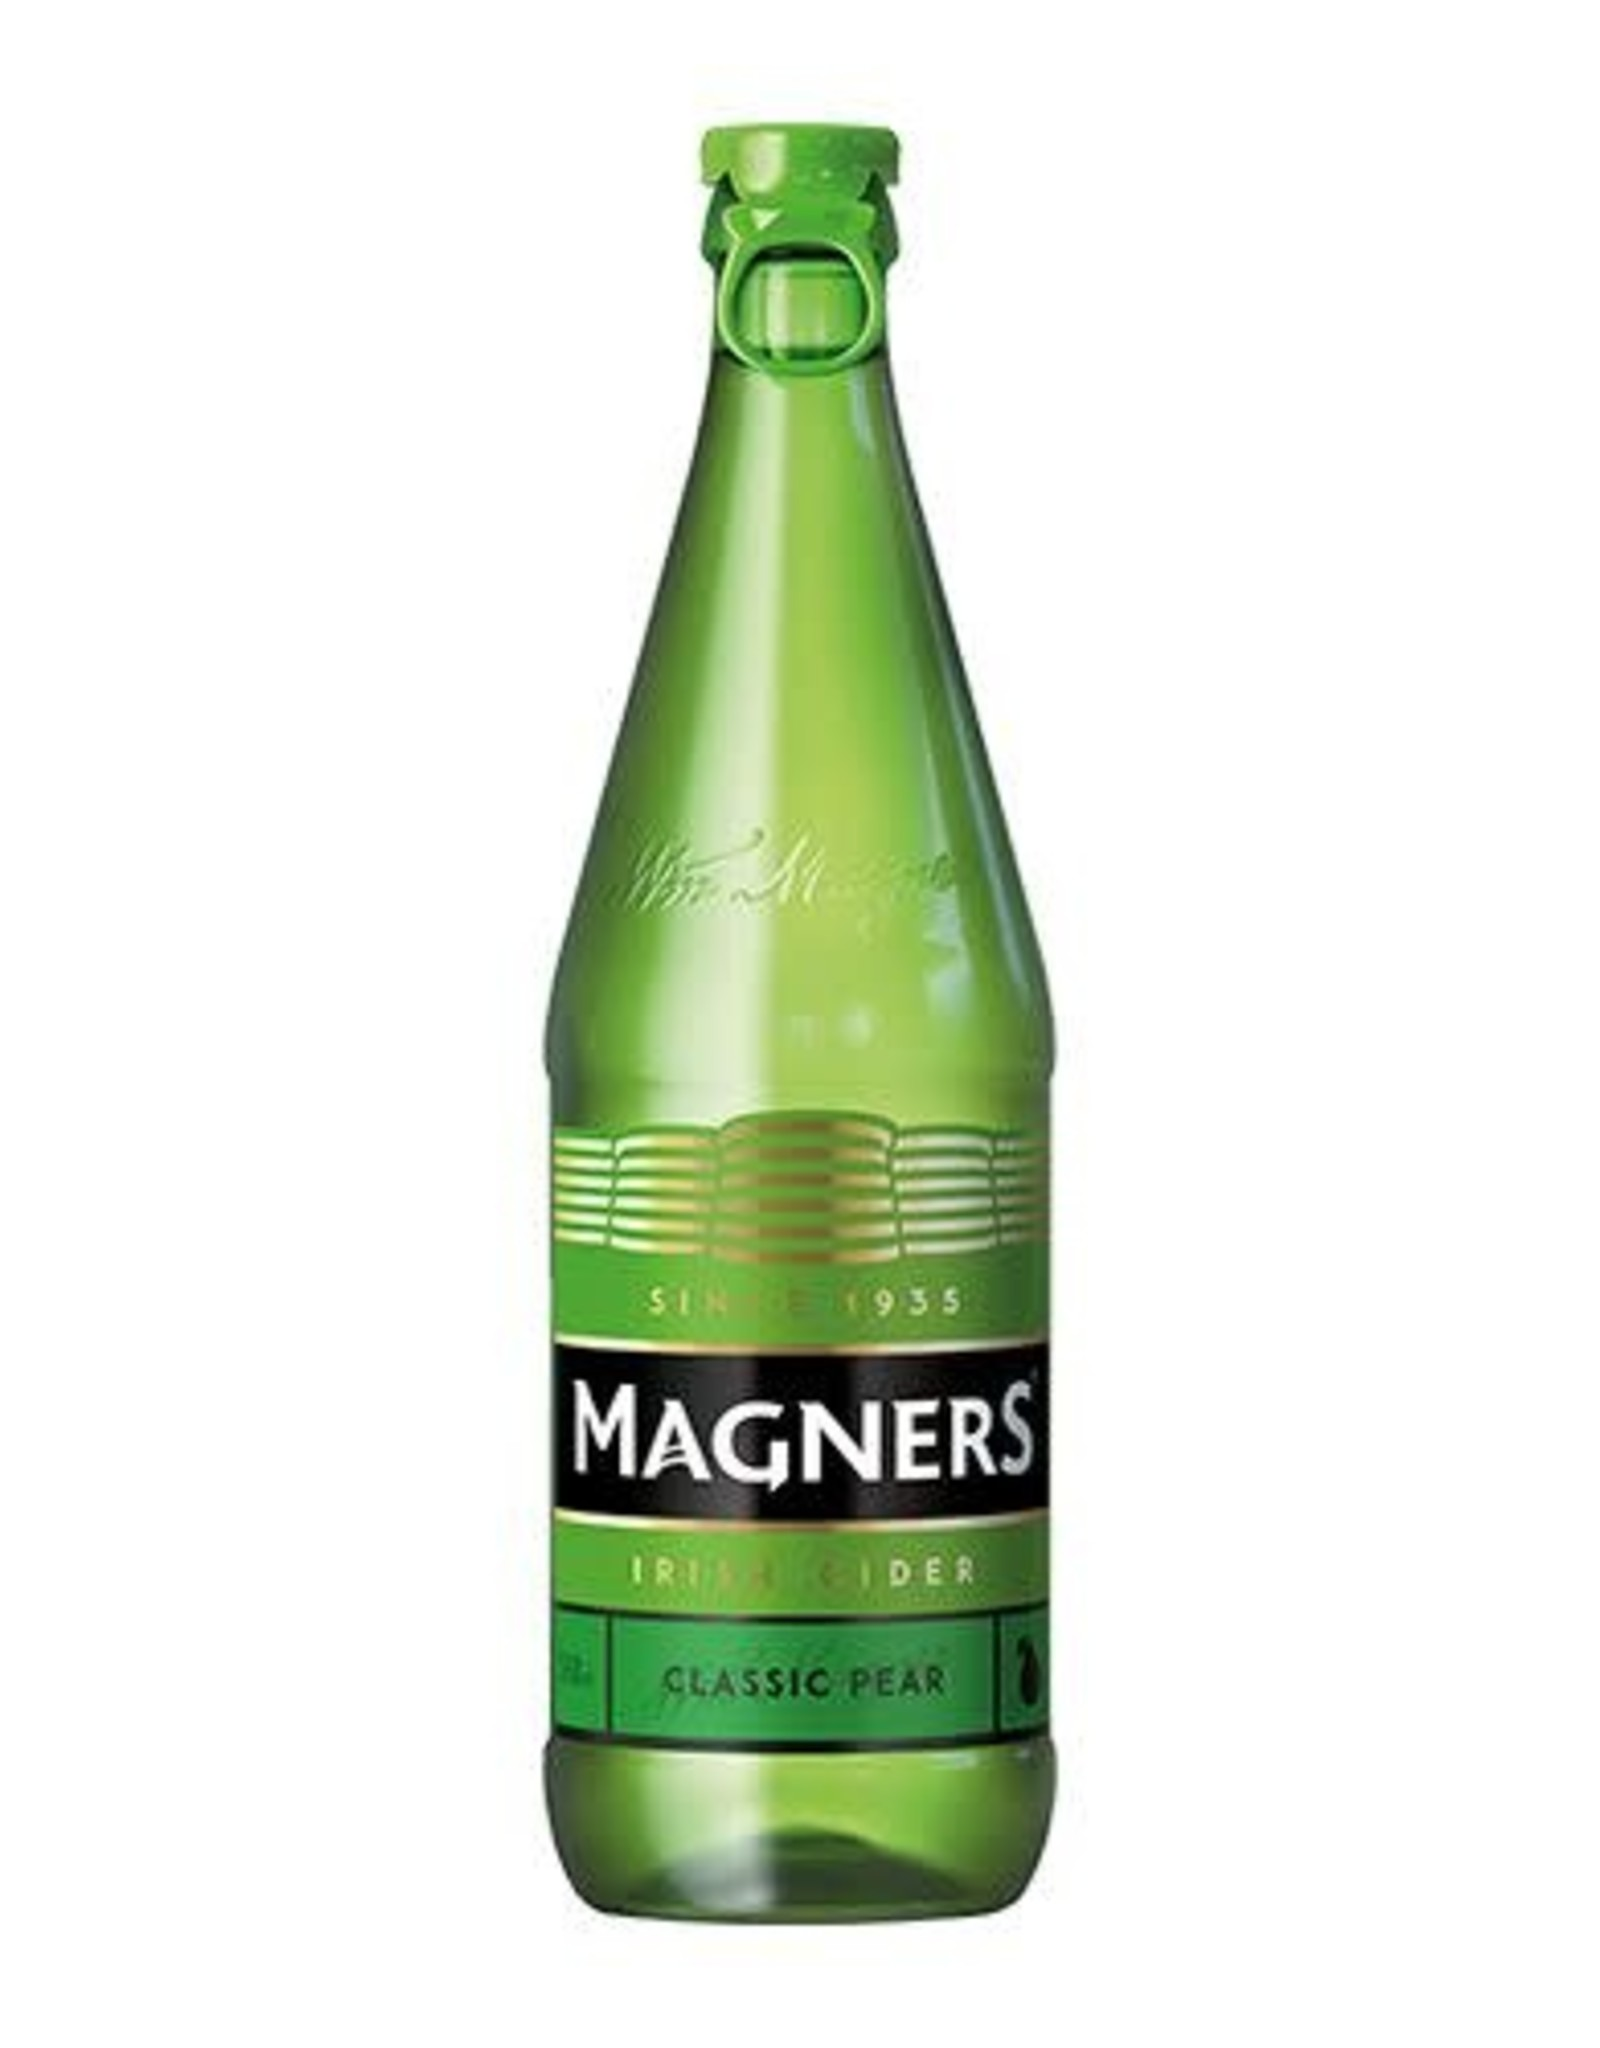 Magners Magners Classic Pear Cider 568 ml